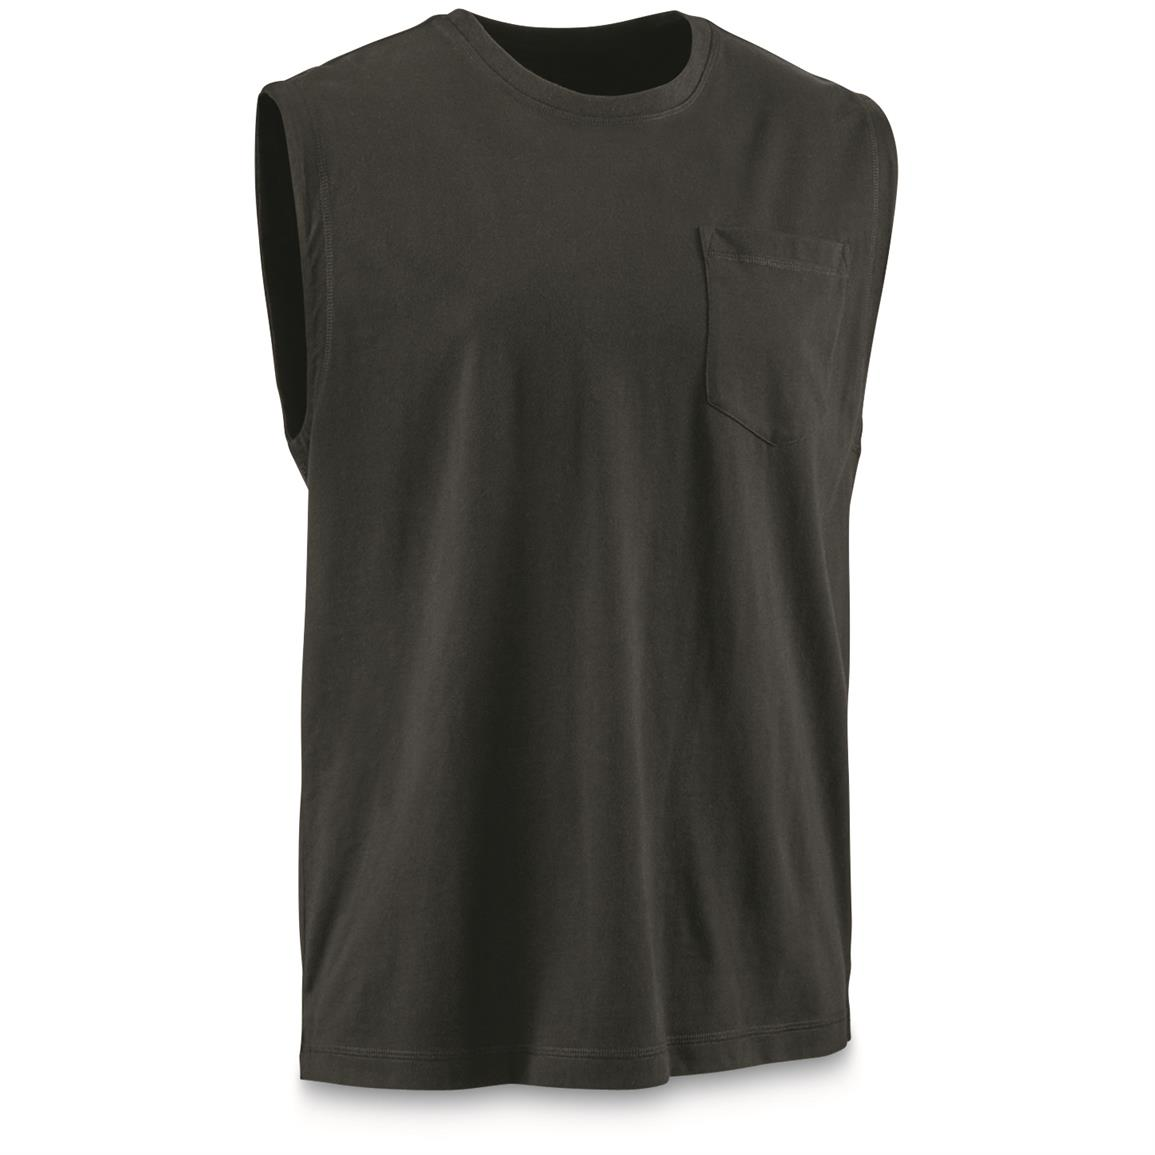 Guide Gear Men's Stain Kicker Sleeveless Pocket T Shirt With Teflon, Black